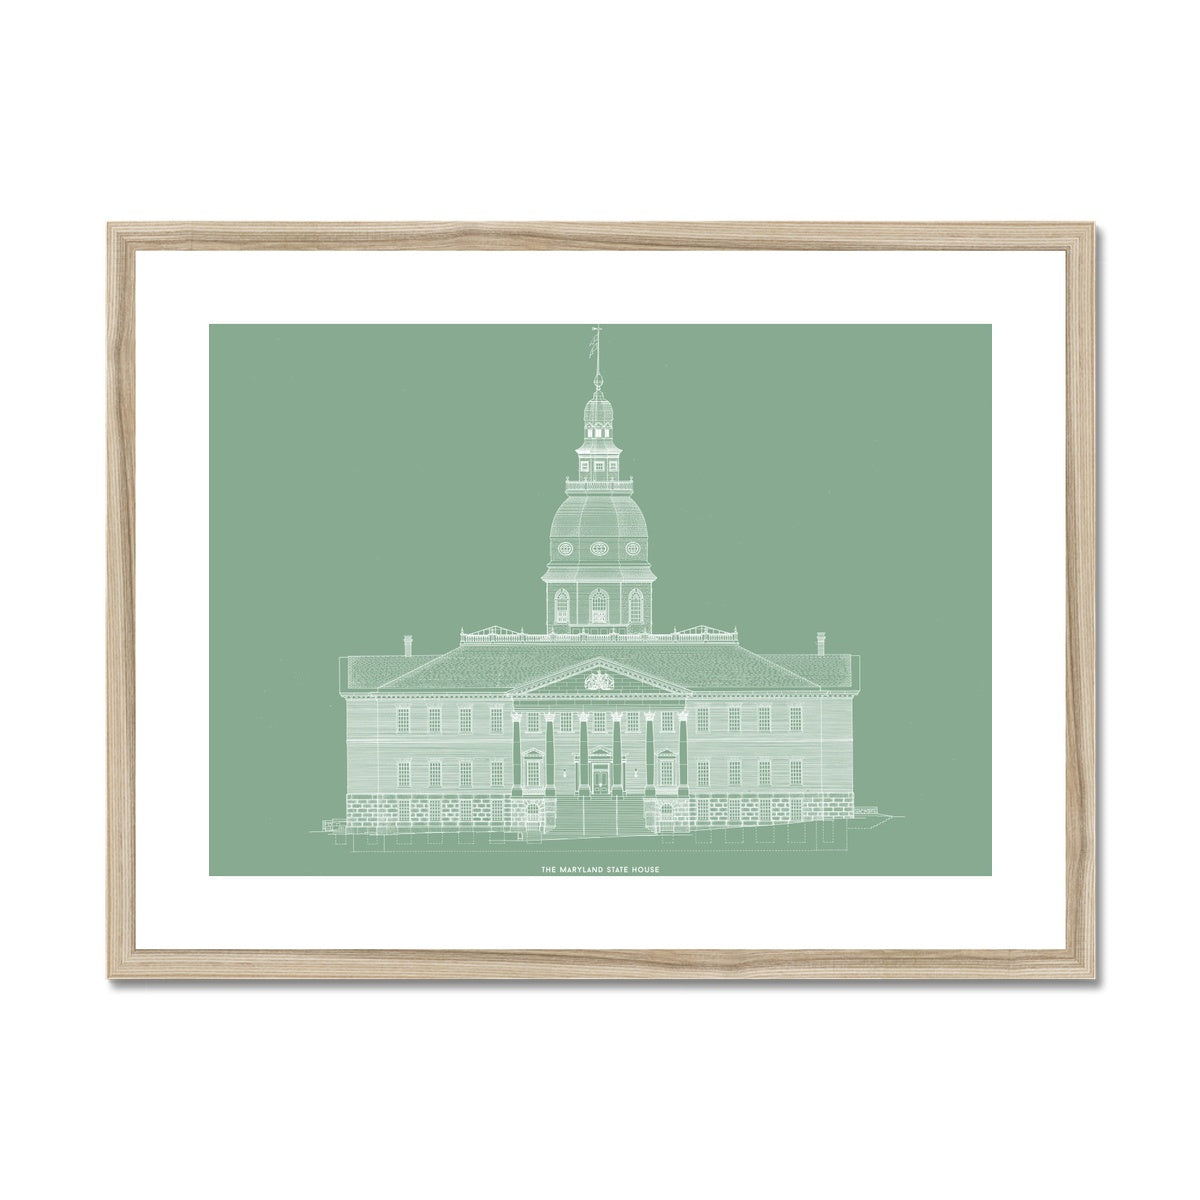 The Maryland State House - Northwest Elevation - Green -  Framed & Mounted Print